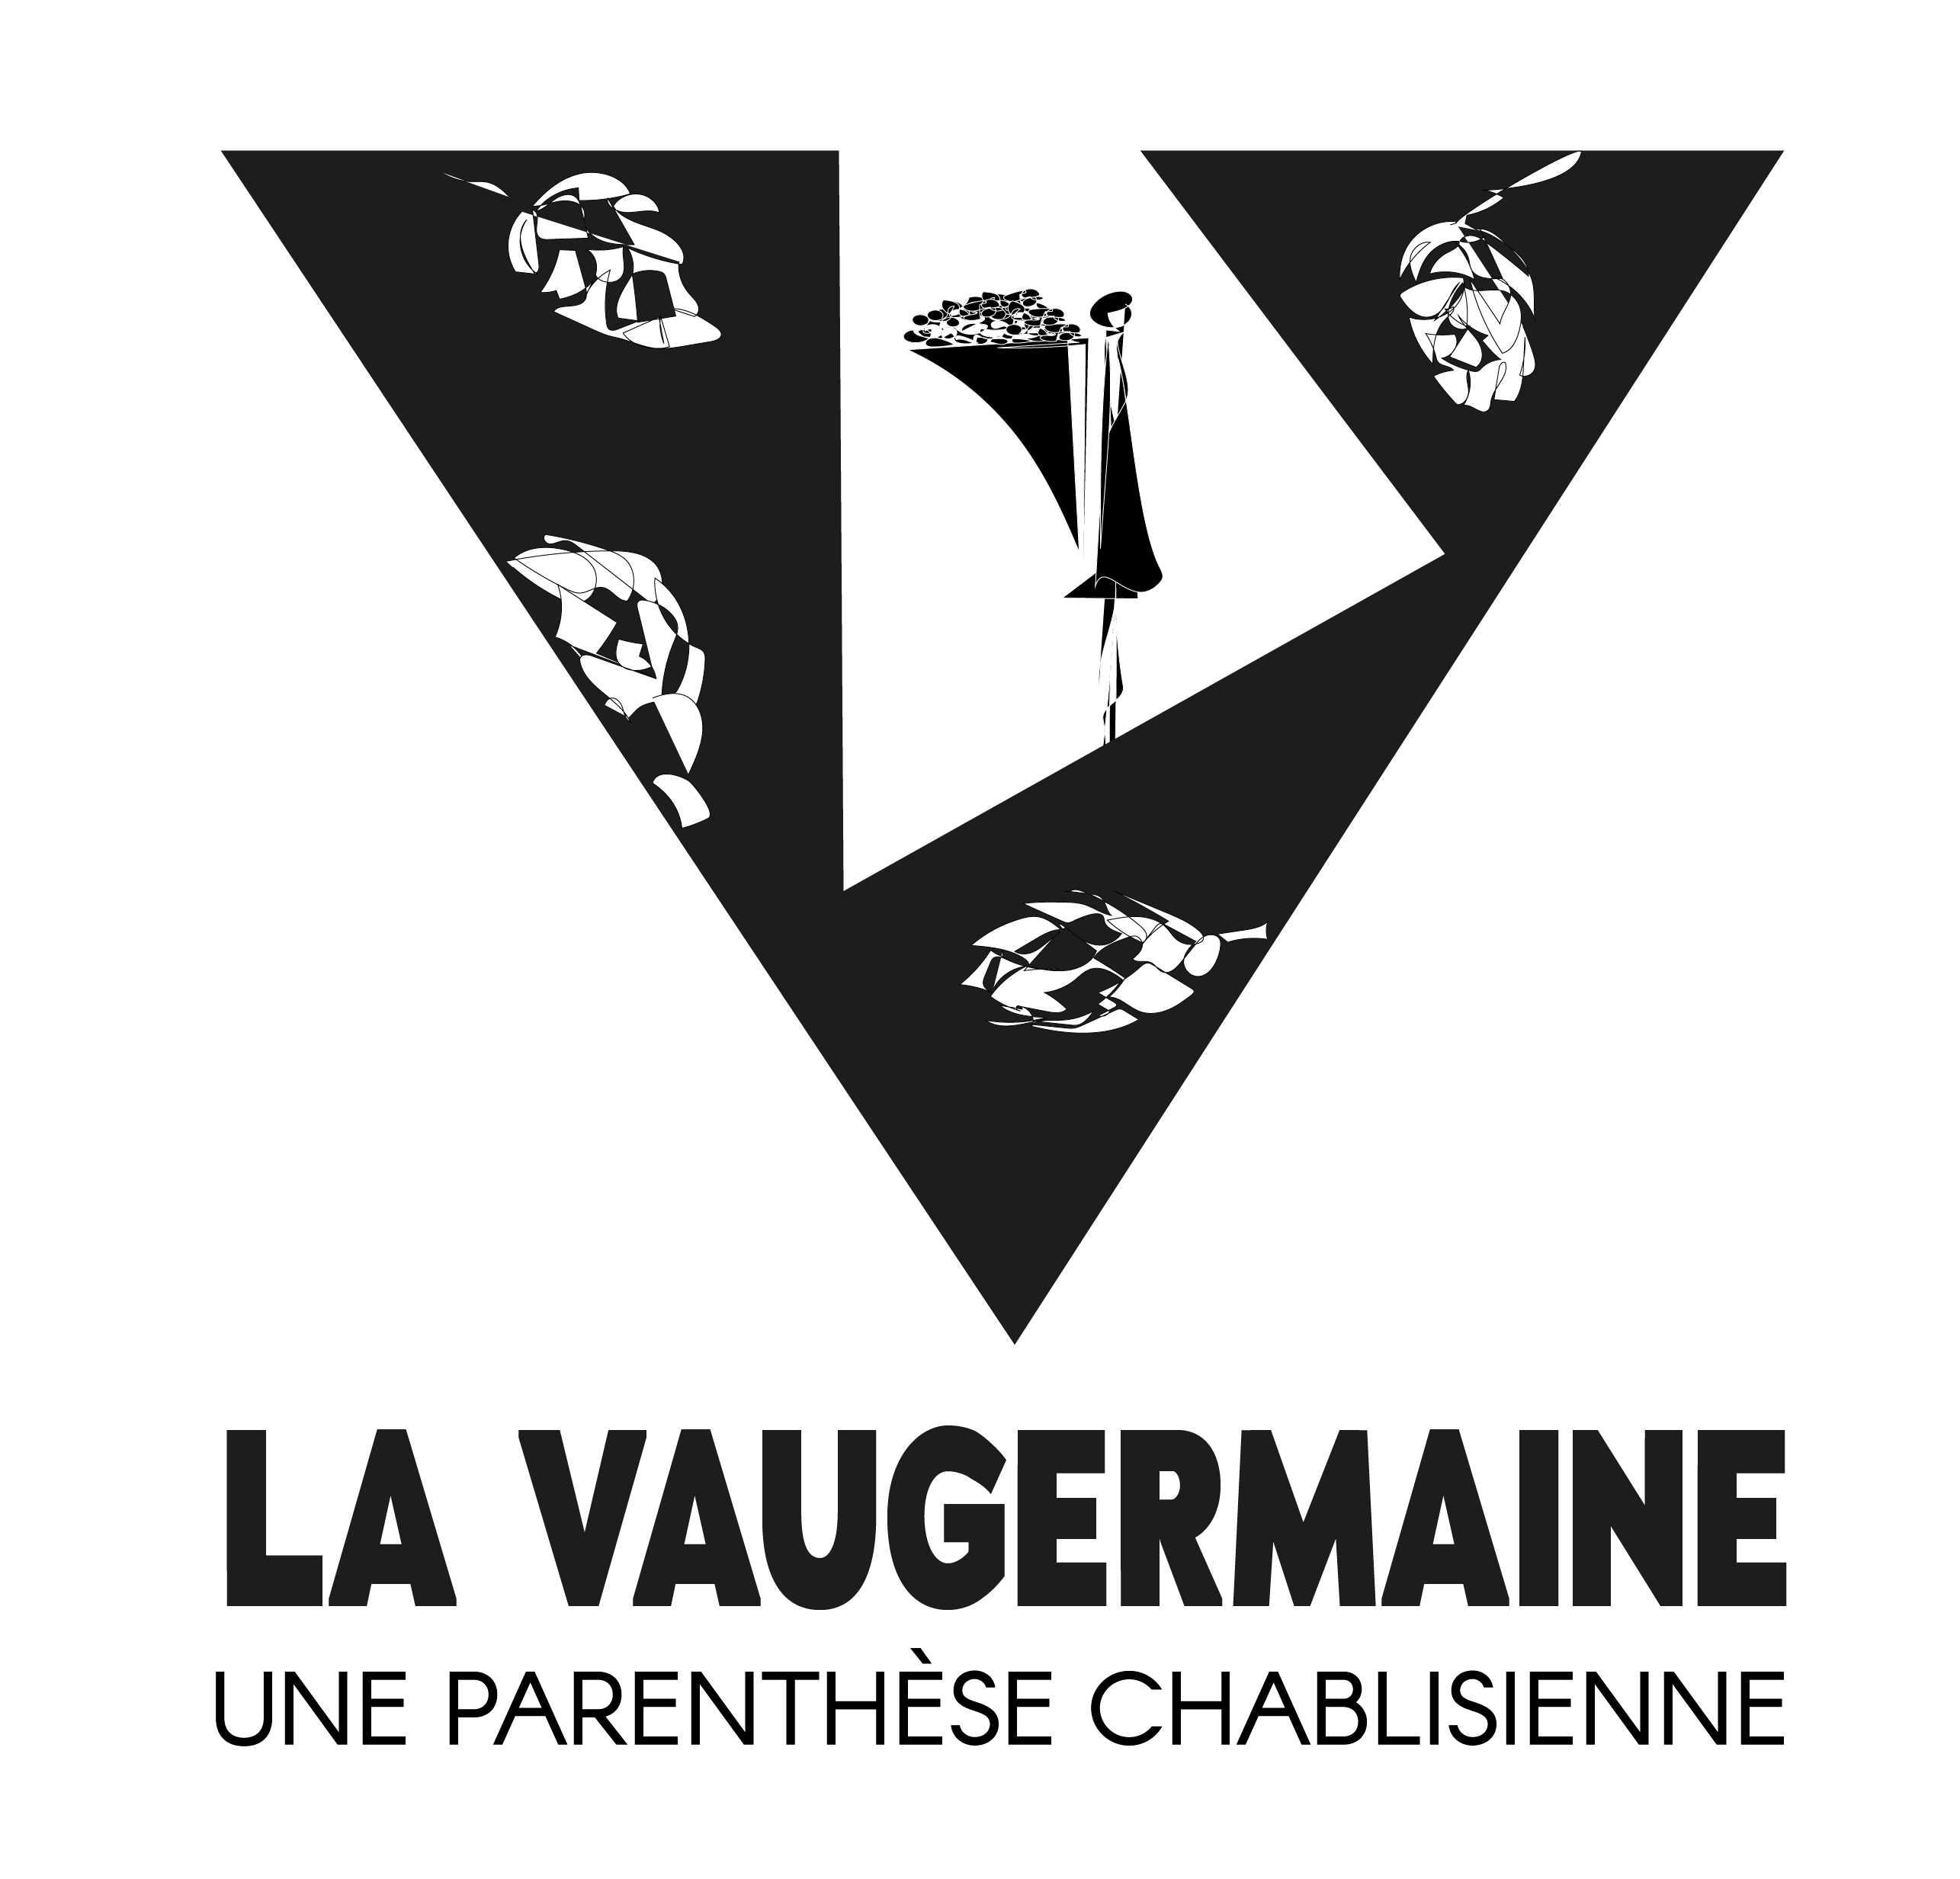 LA VAUGERMAINE